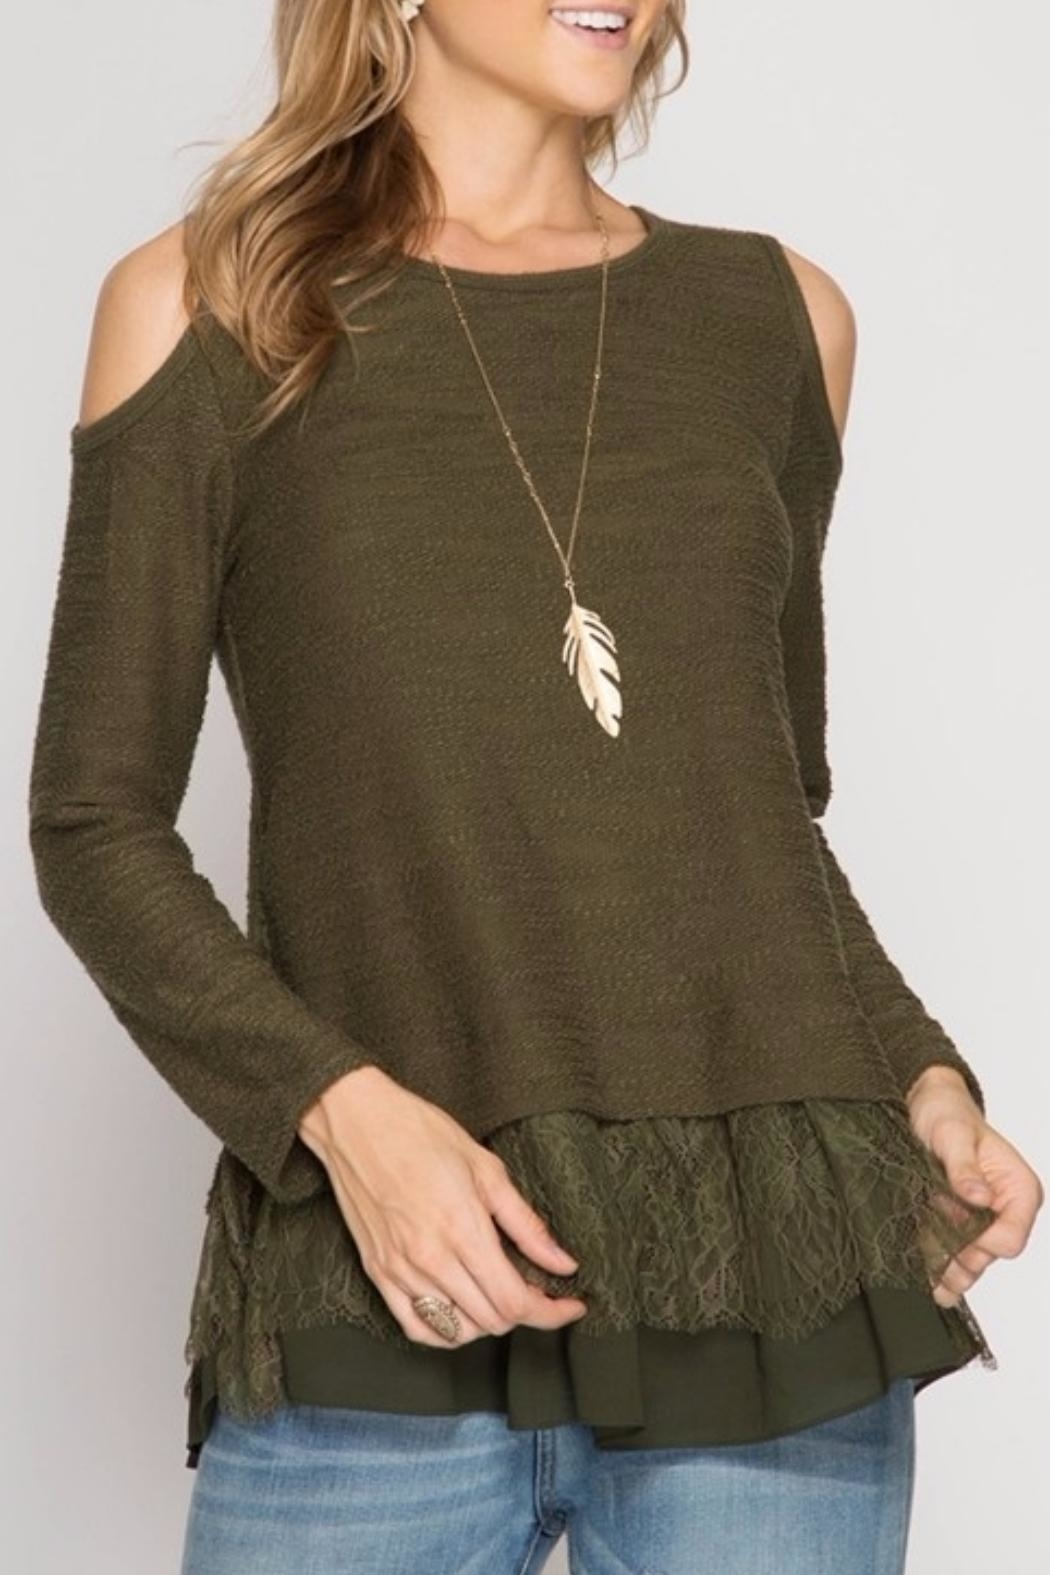 She + Sky Olive Lace Top - Main Image